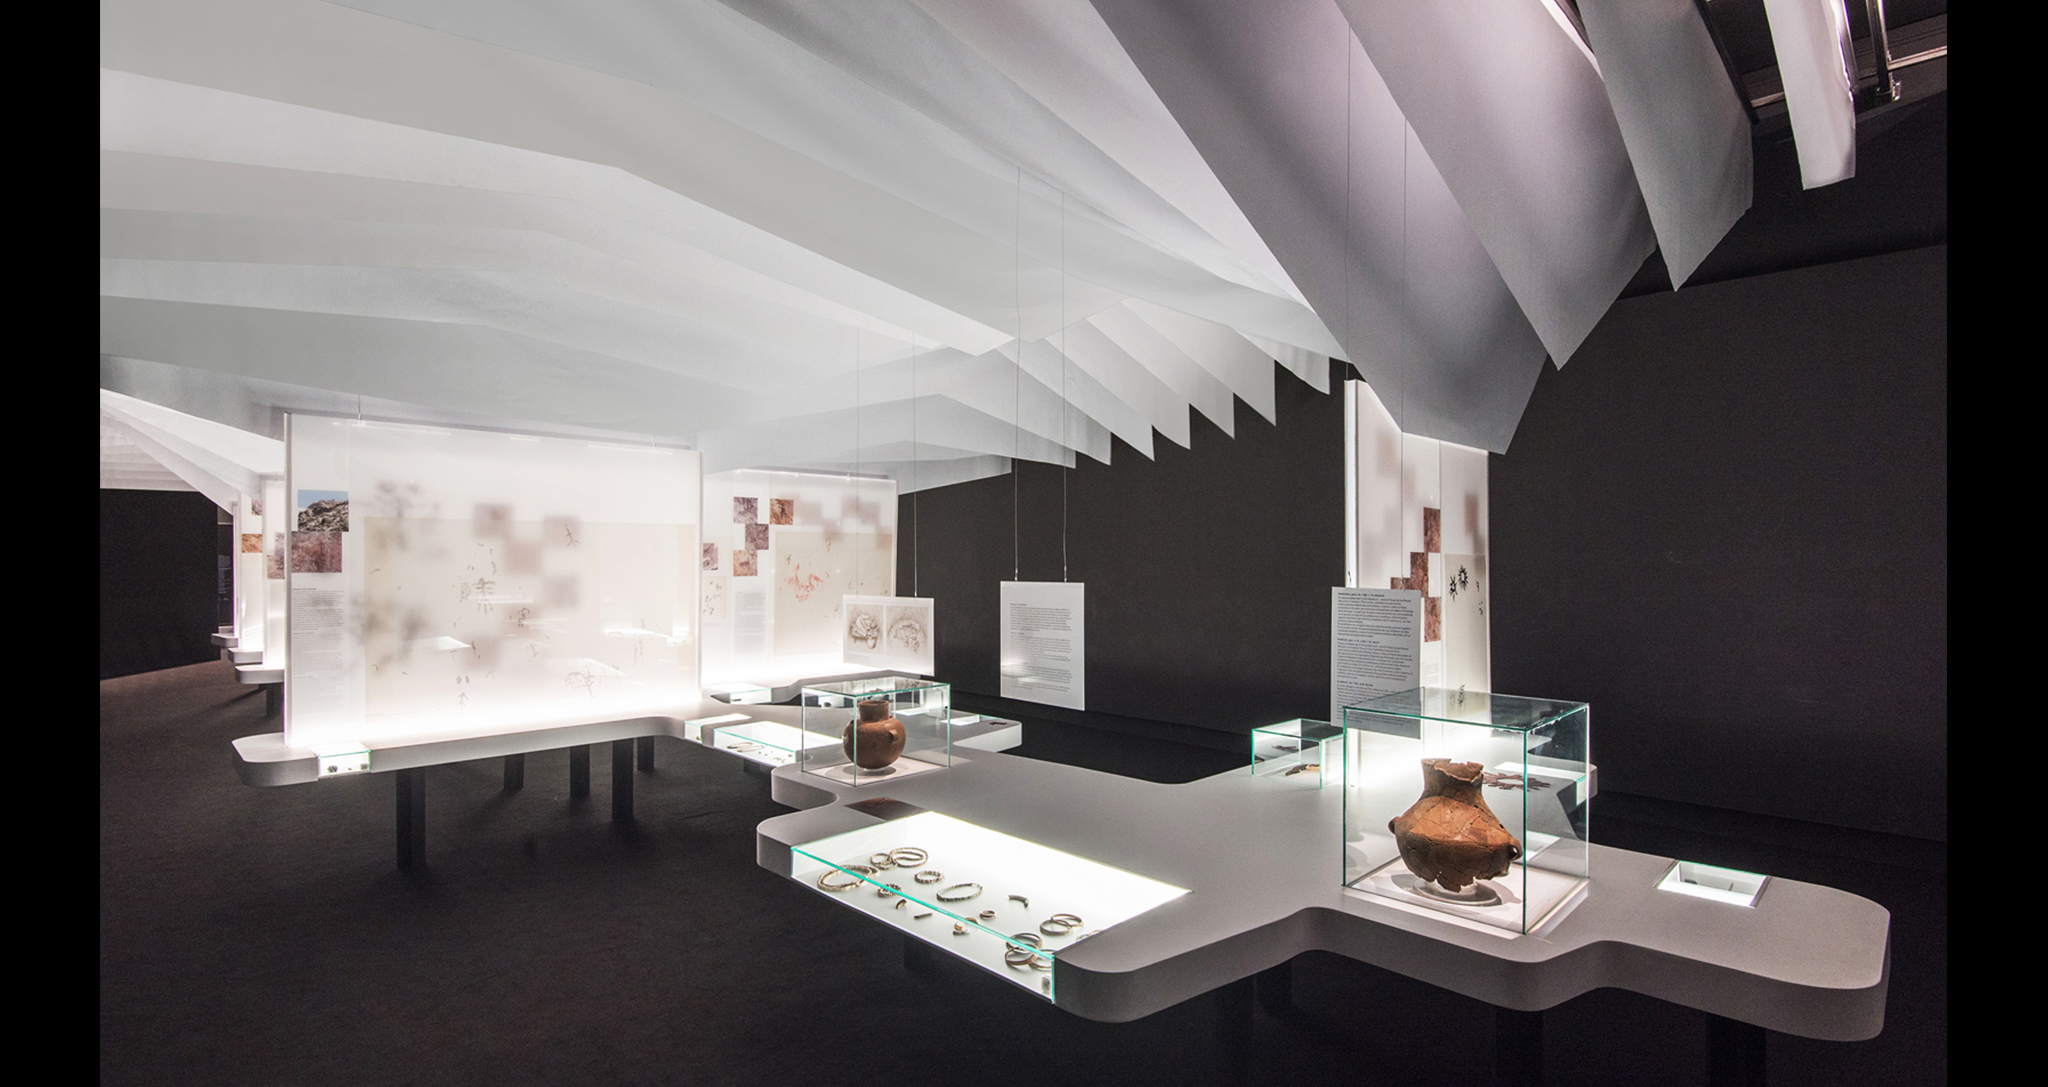 RUPESTRE, THE FIRST SANCTUARIES, TEMPORARY EXHIBITION, FOR THE ARCHAEOLOGICAL MUSEUM OF ALICANTE, BY ROCAMORA DISEÑO Y ARQUITECTURA, ELCHE, ALICANTE, SPAIN